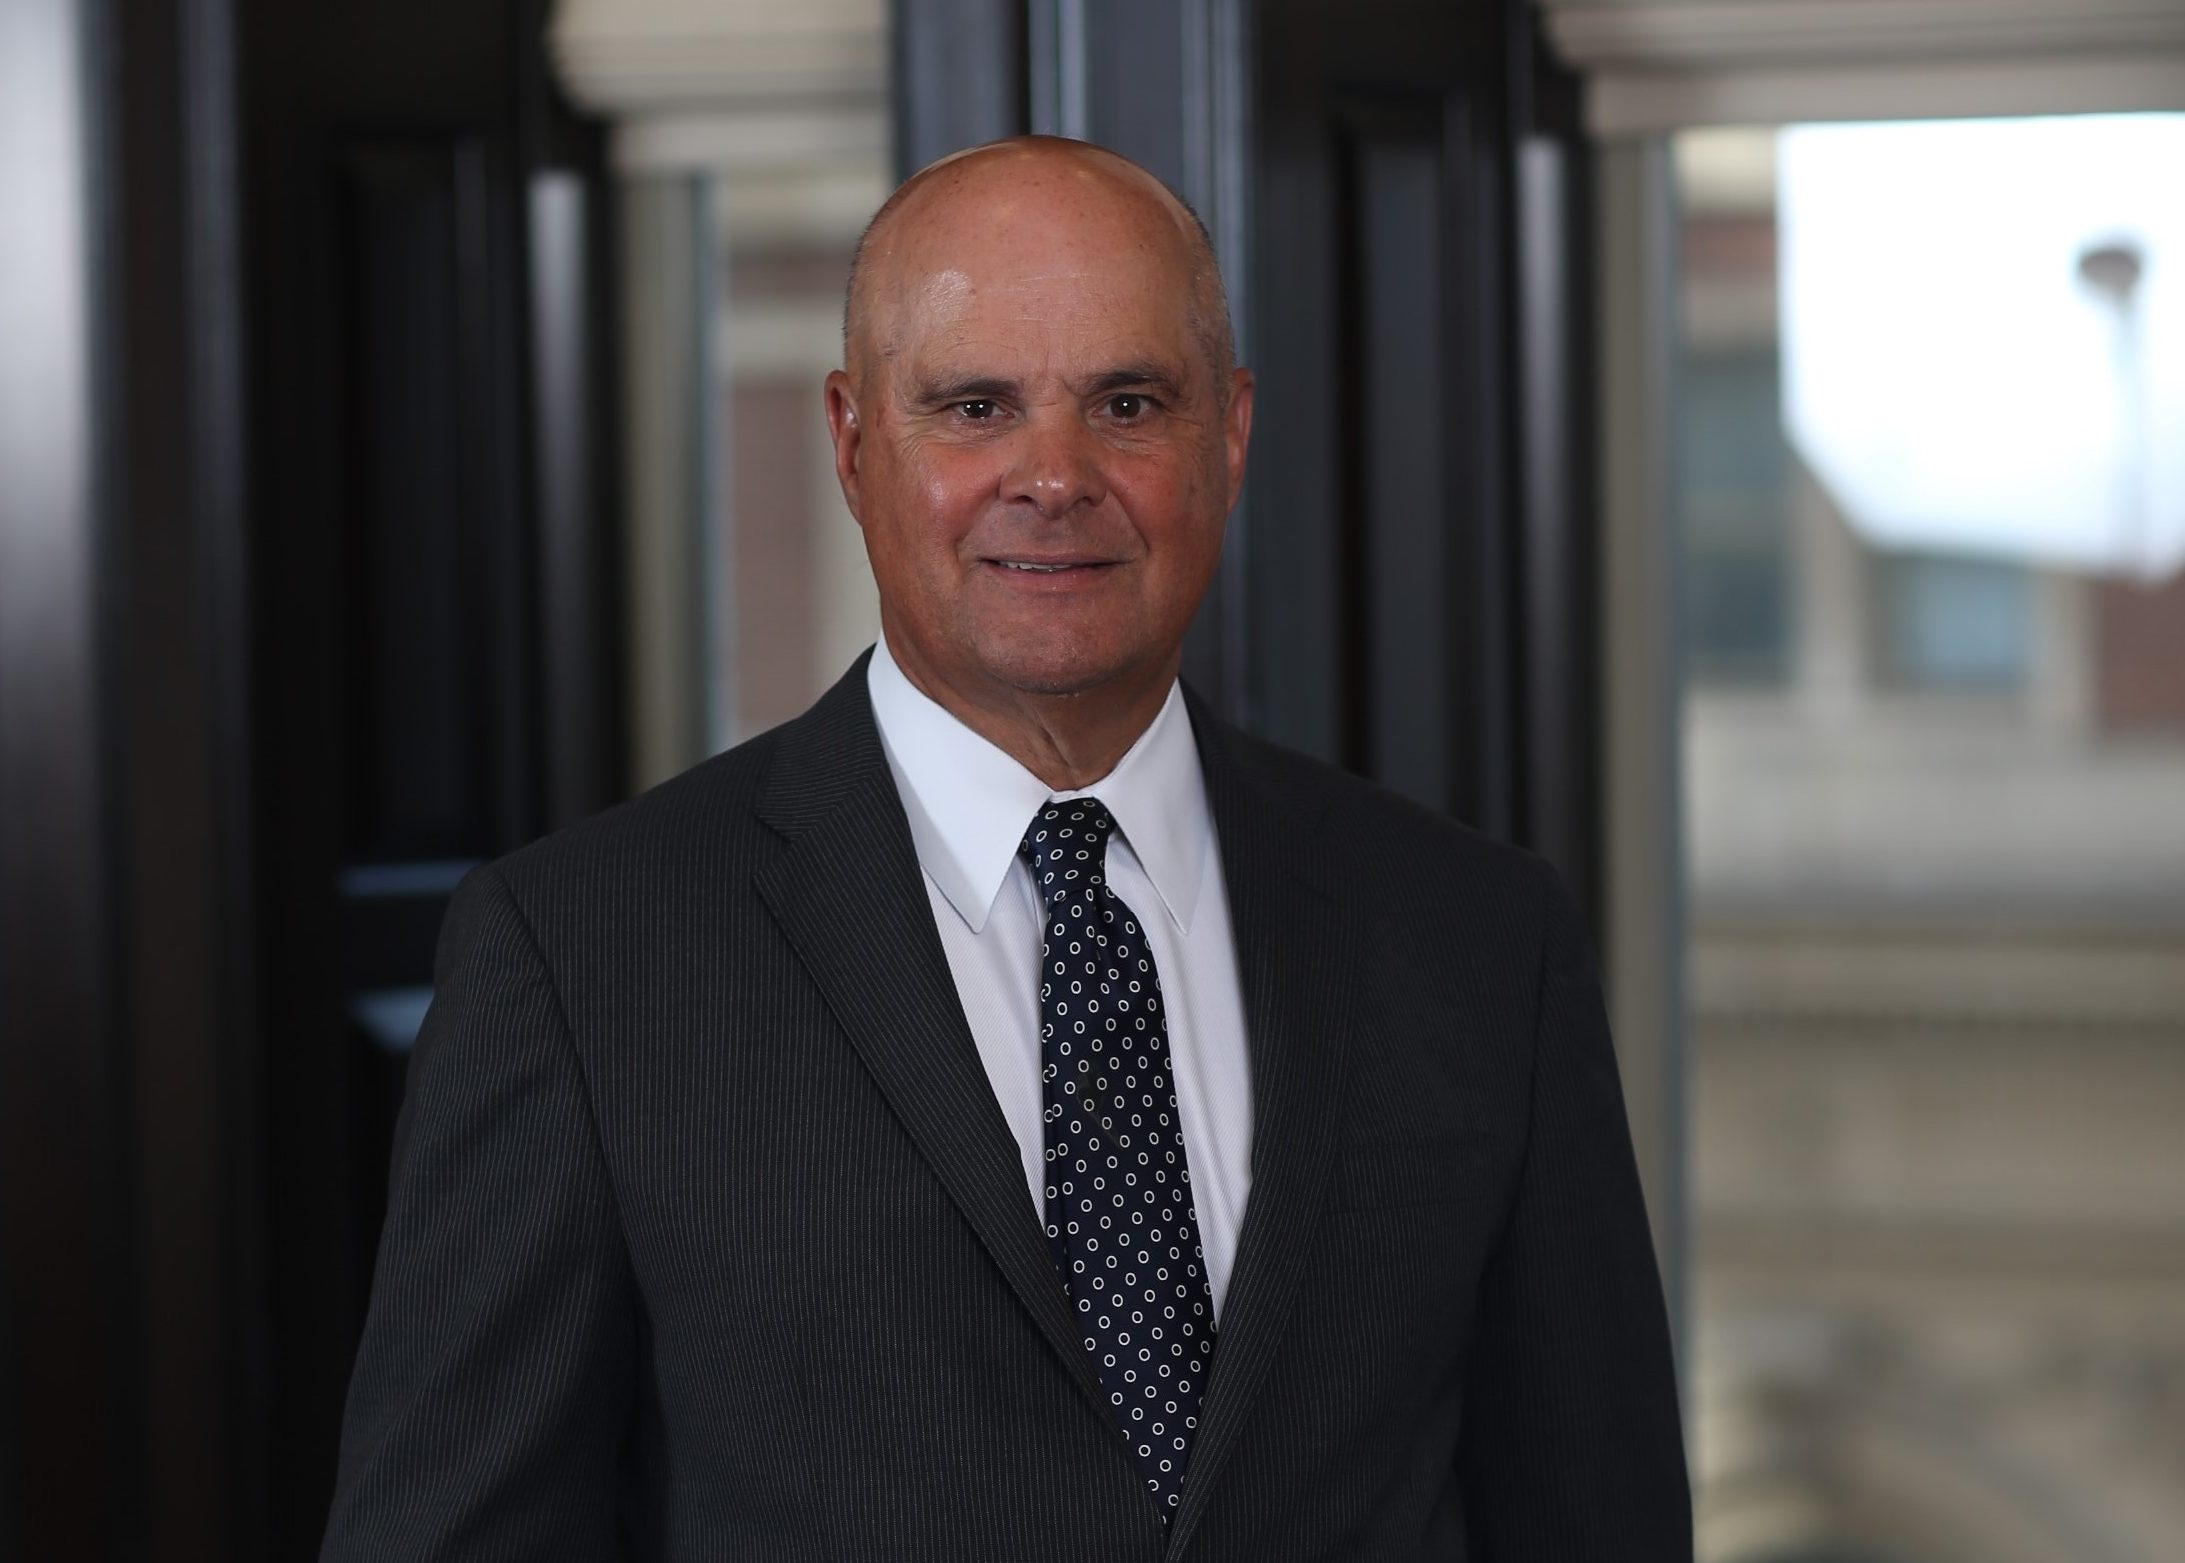 Charles Pizzi was named chairman of Independence Health Group´s board effective July 1.